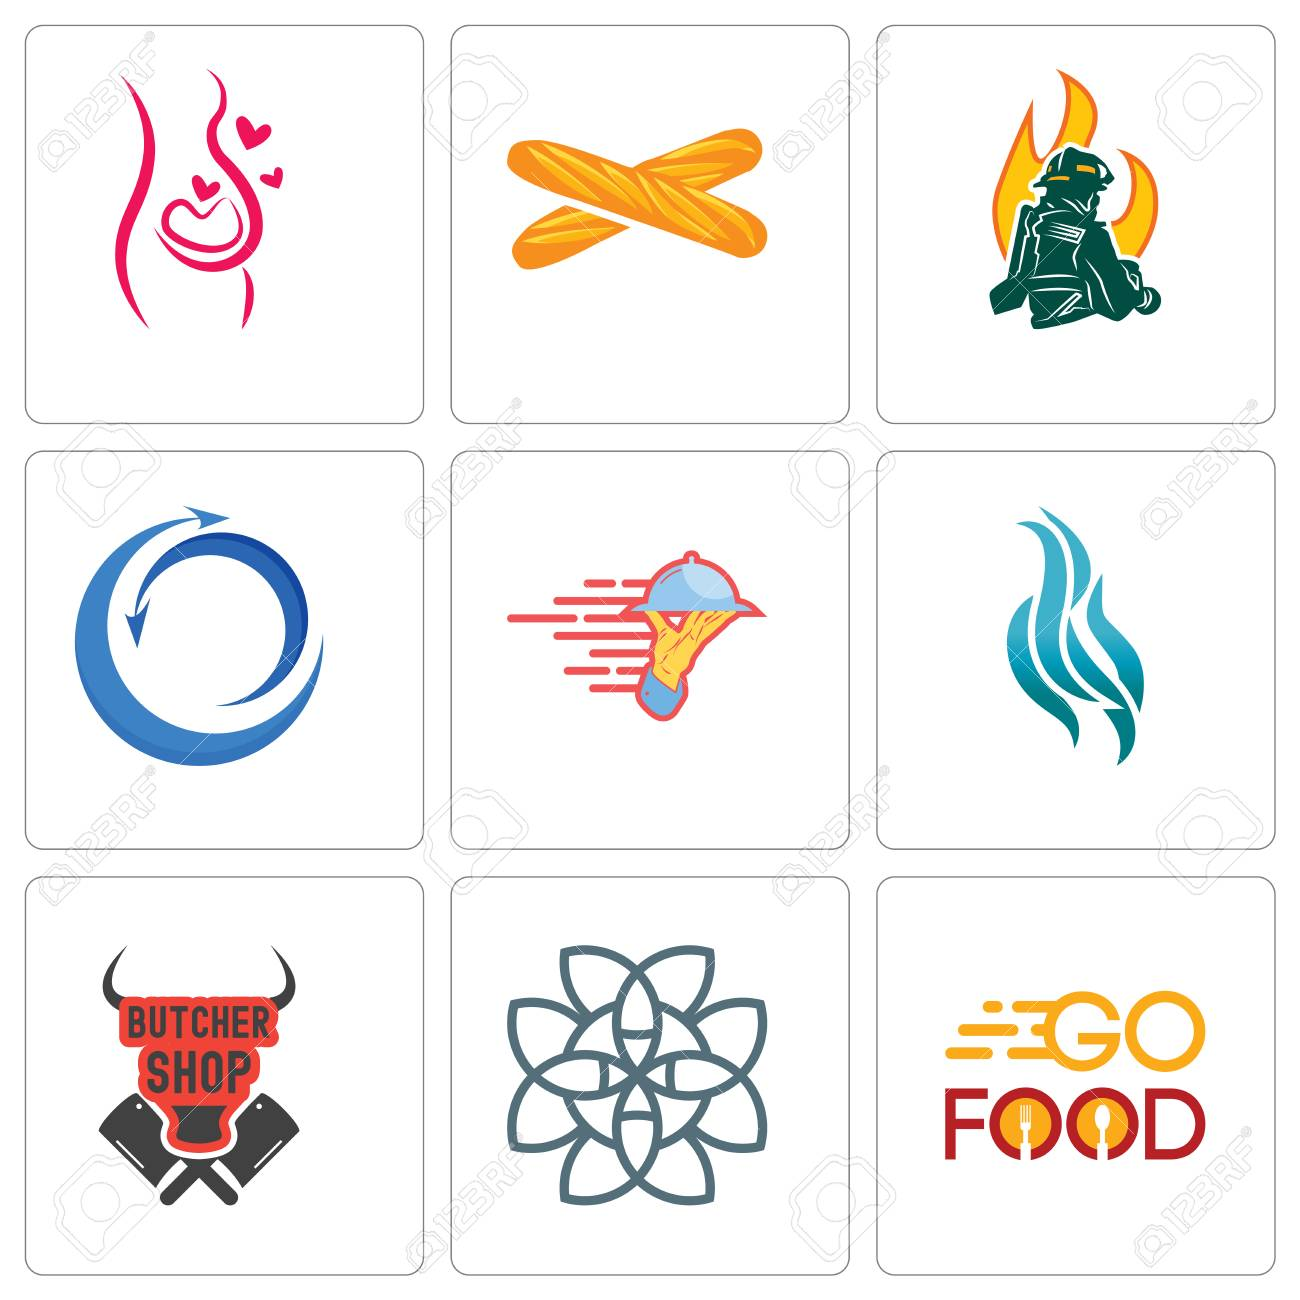 Set Of 9 simple editable icons such as go food, celtic knot,